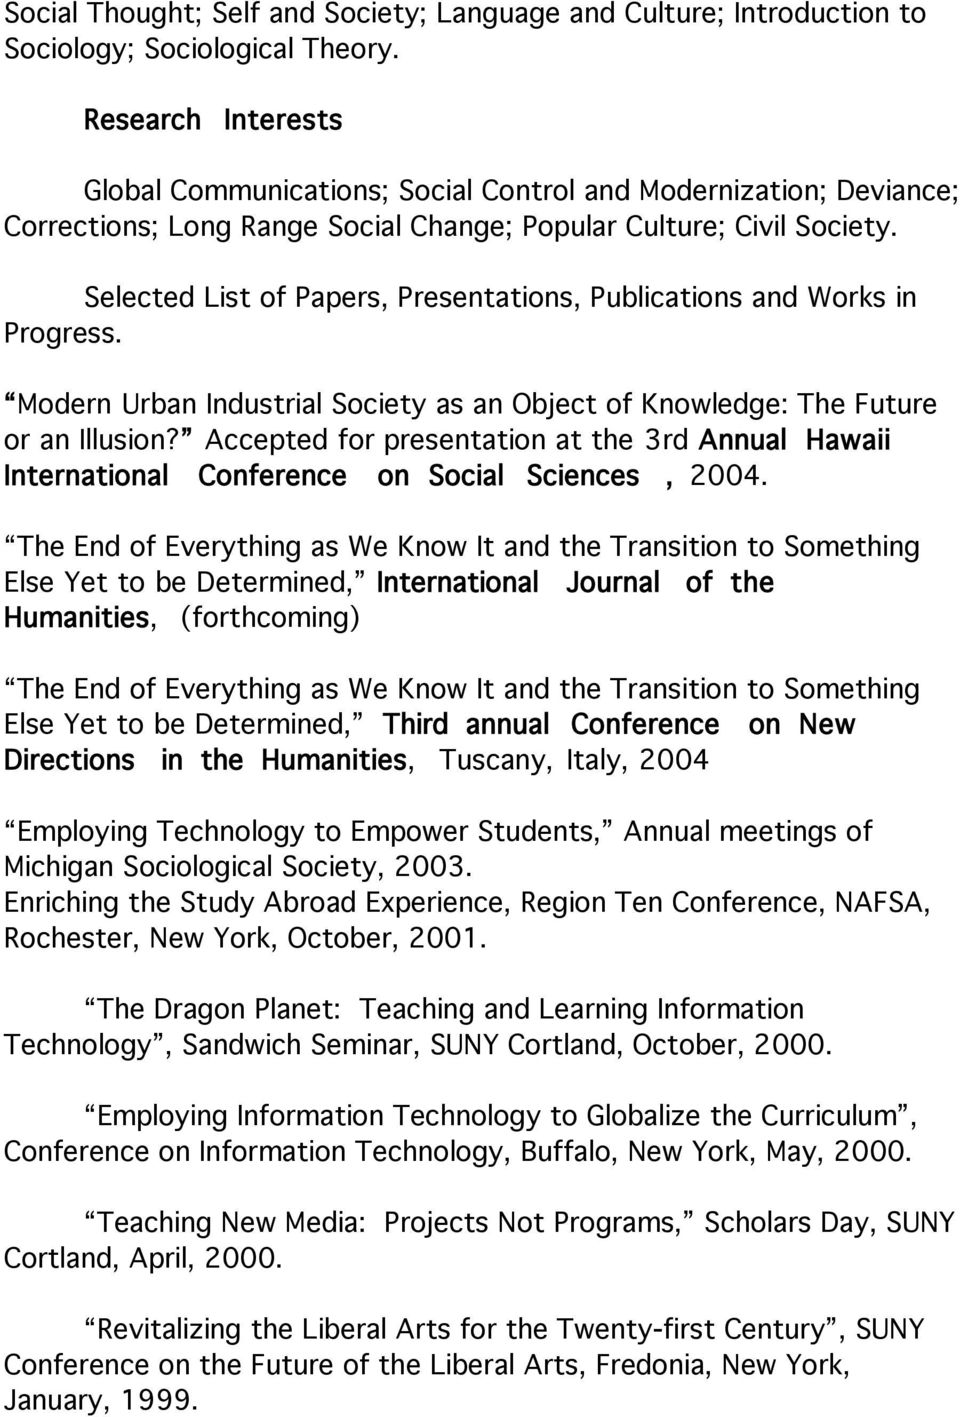 Selected List of Papers, Presentations, Publications and Works in Progress. Modern Urban Industrial Society as an Object of Knowledge: The Future or an Illusion?